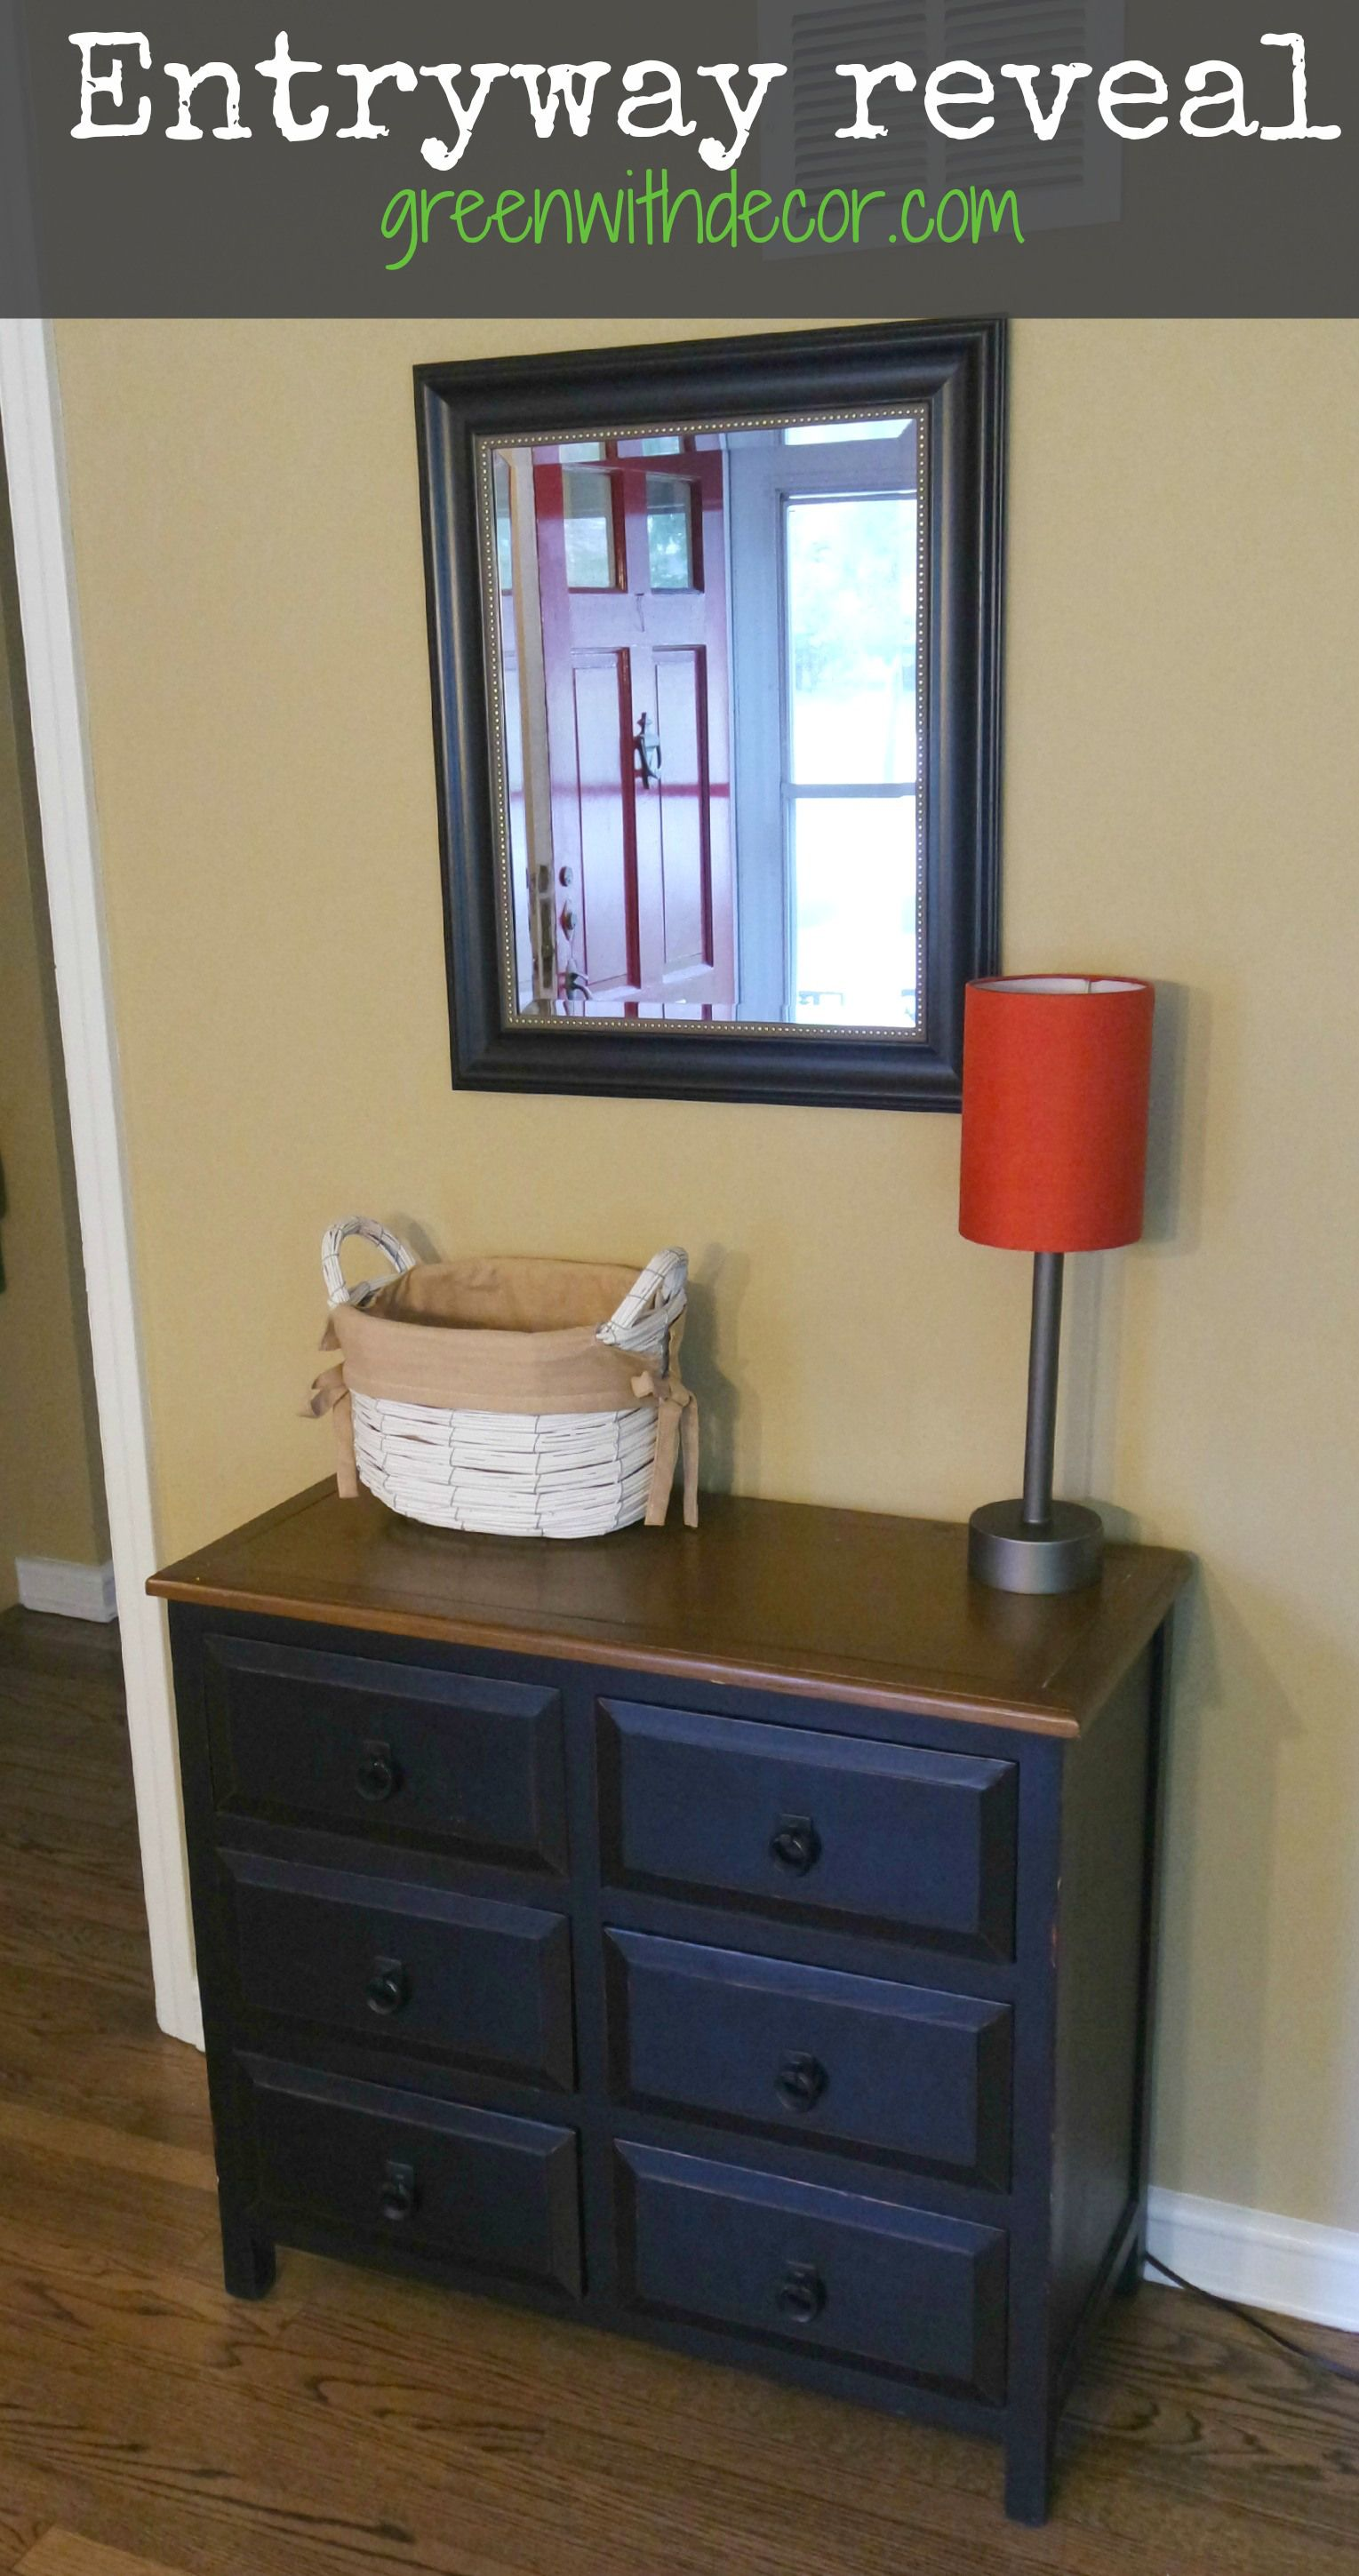 Green With Decor – Functional entryway reveal